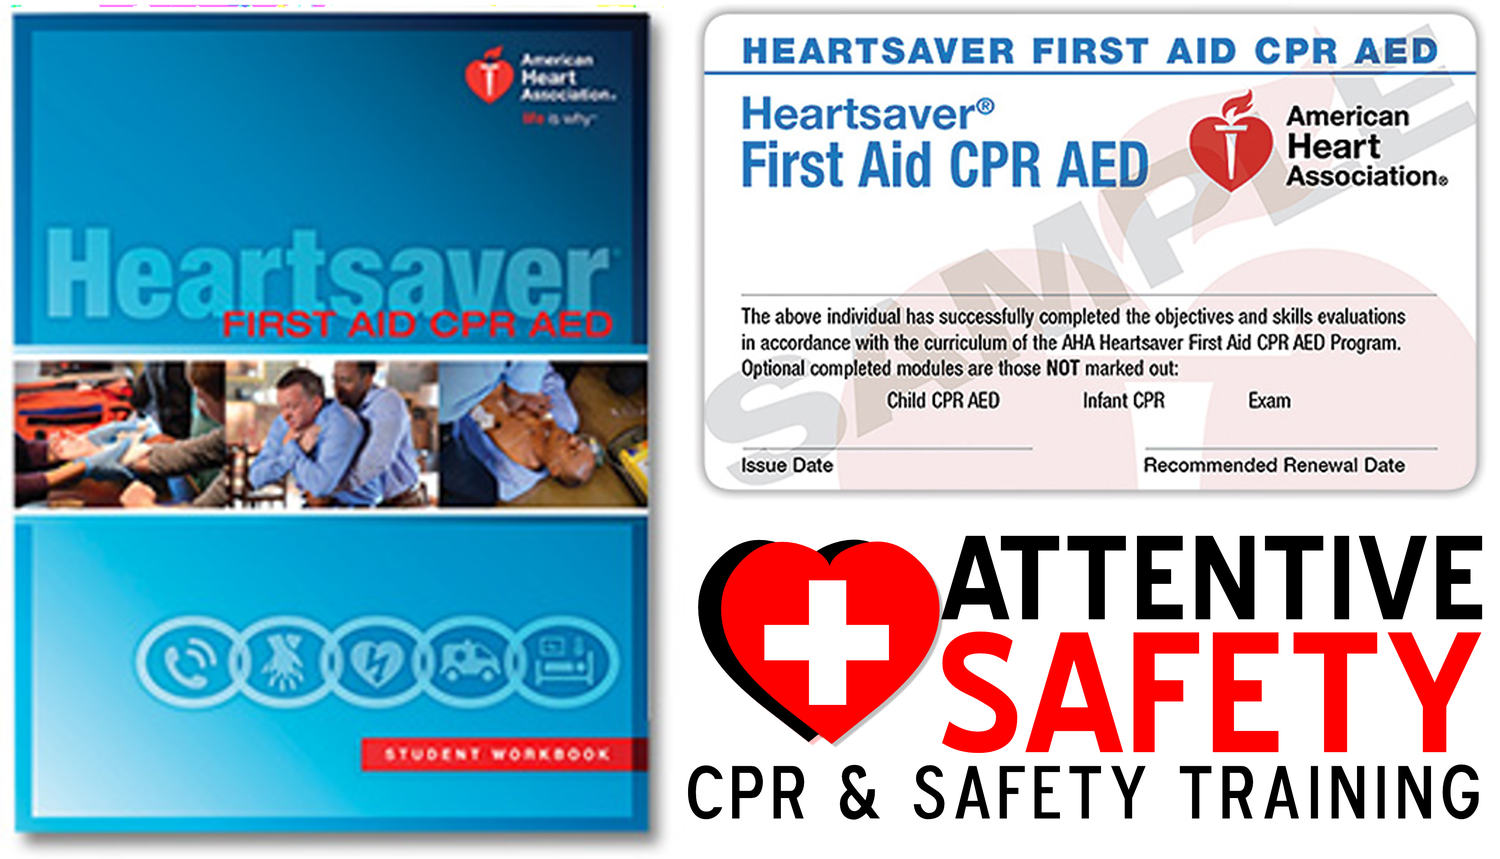 First aid cpr aed skills session must have part 1 certificate heartsaver first aid cpr aed skills session must have part 1 certificate 1betcityfo Choice Image